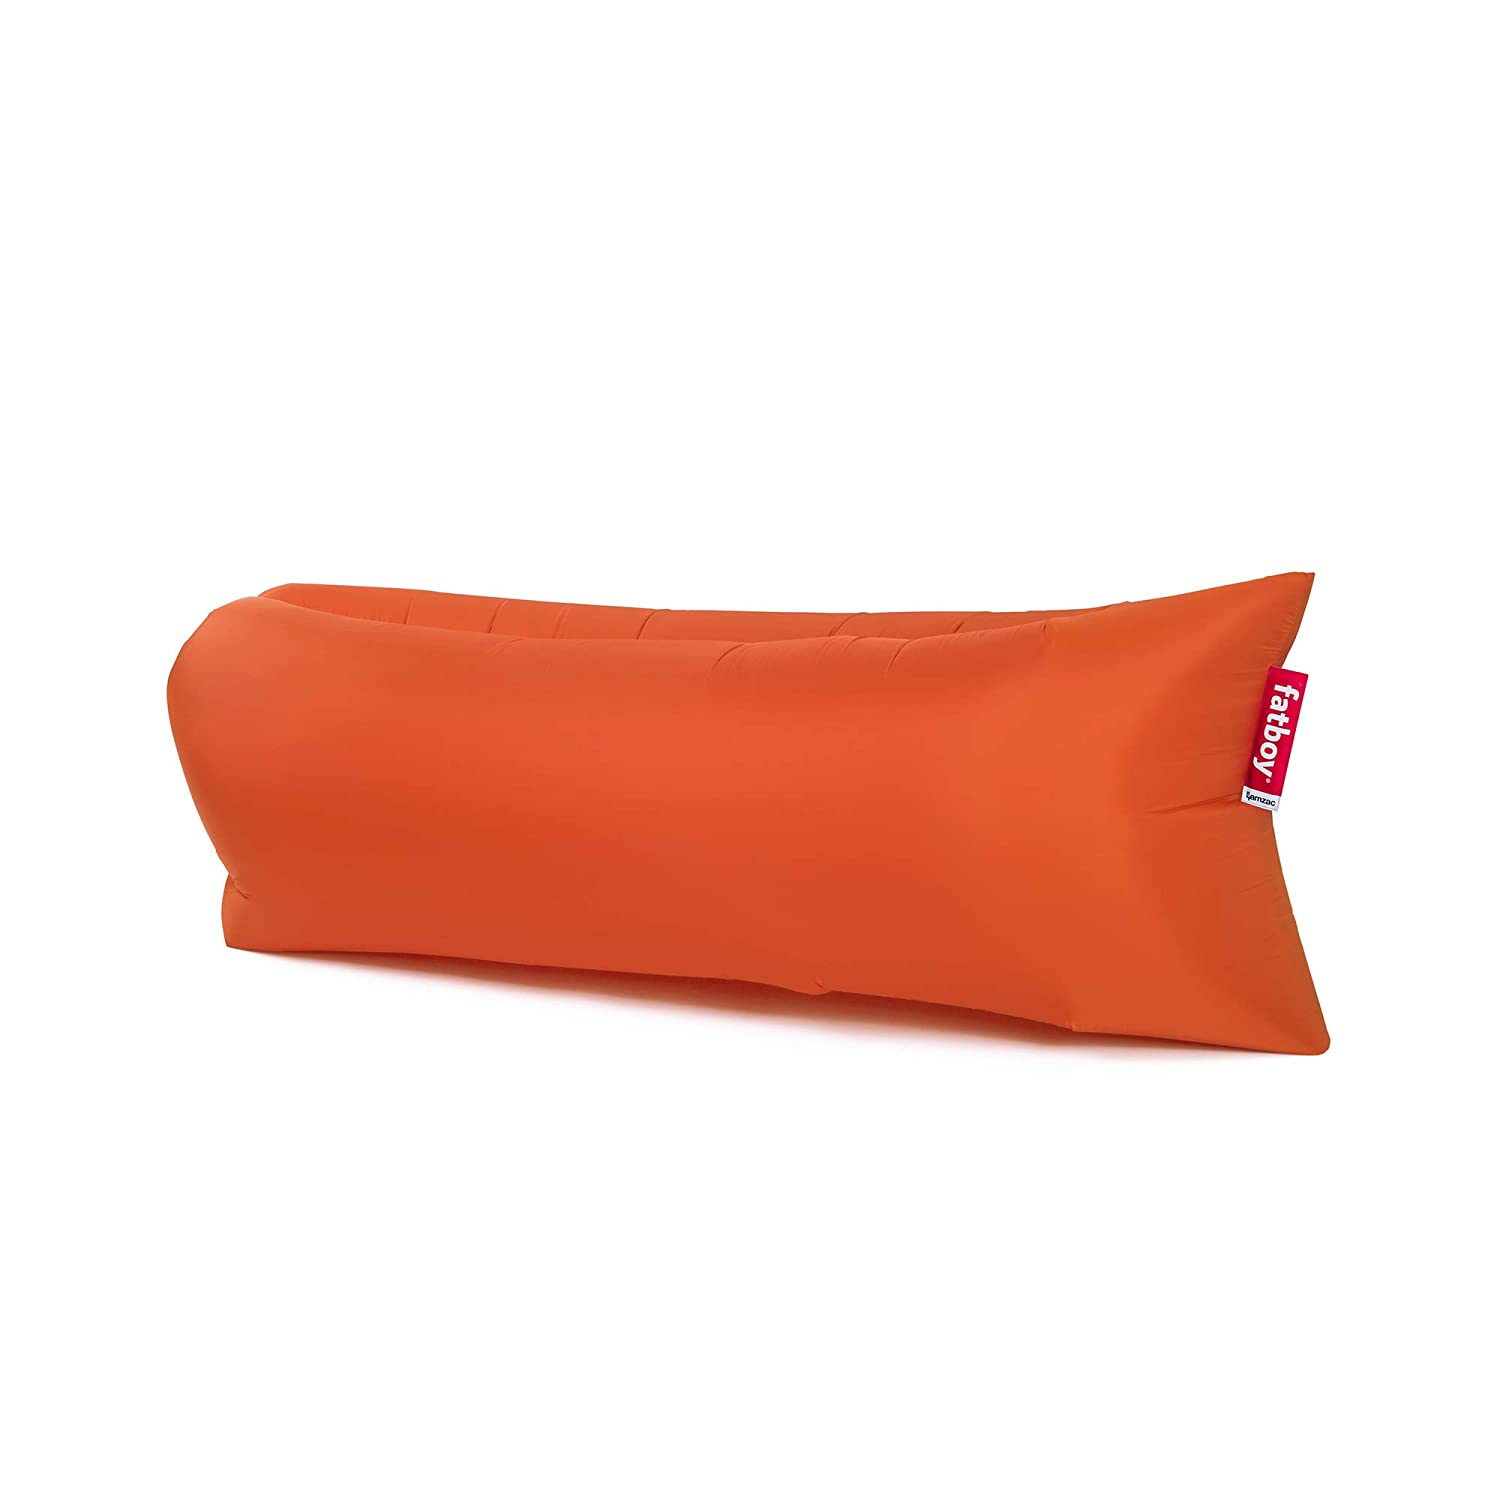 Fatboy Lamzac The Original Version 1 Inflatable Lounger With Carry